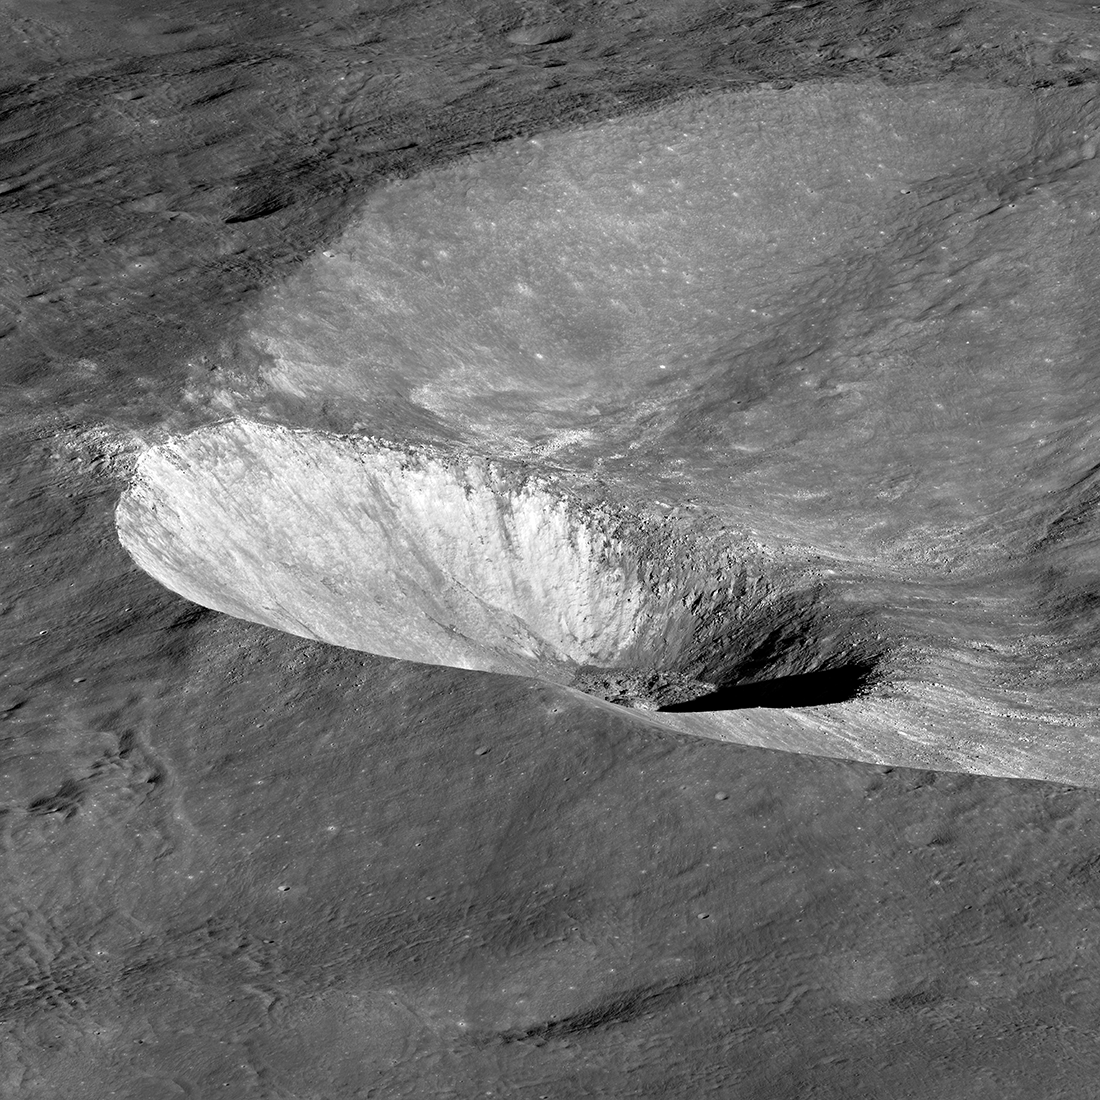 Hawke crater